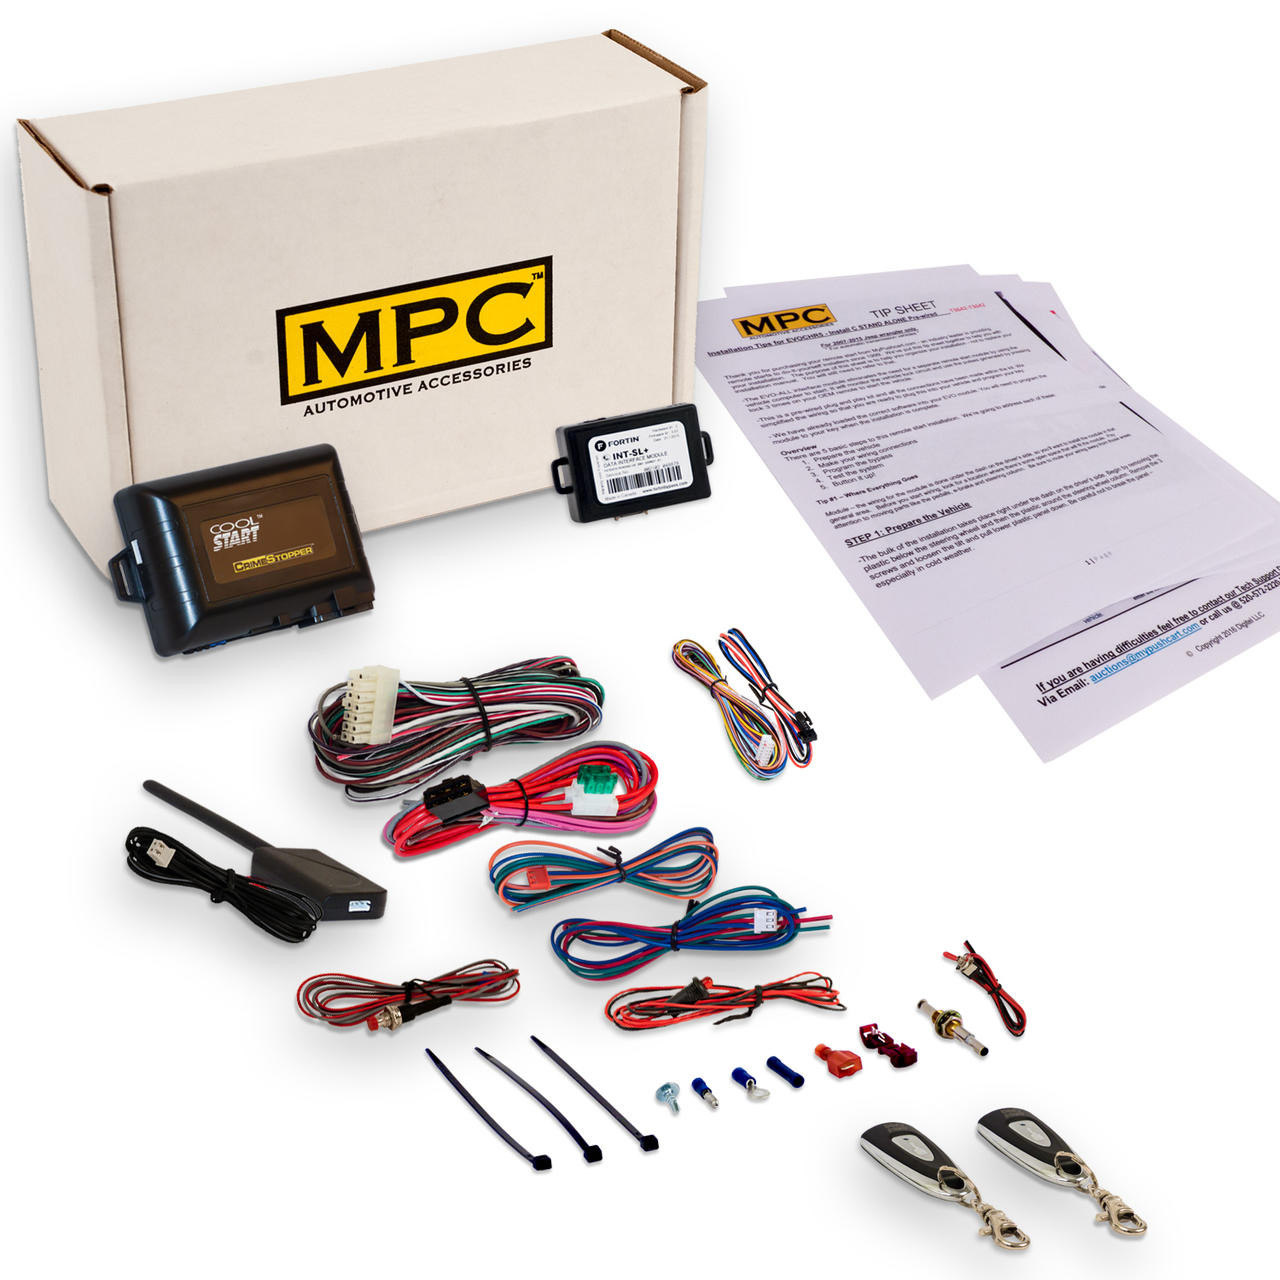 MPC Ford Excursion 2002 Complete 1-Button Remote Start Kit